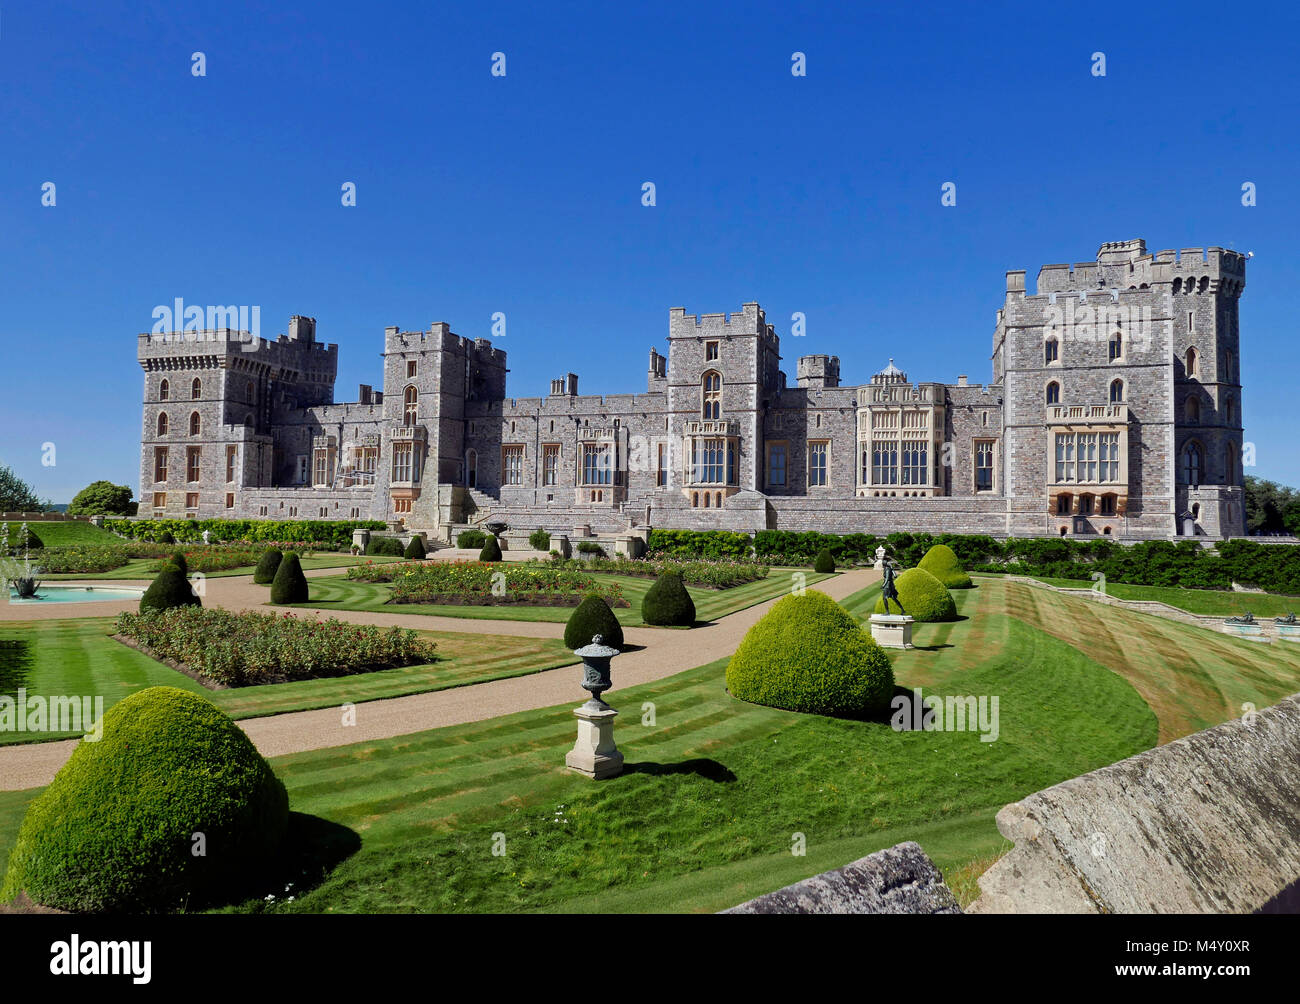 Windsor Castle - Summer view of East Terrace & Royal Apartments - Stock Image